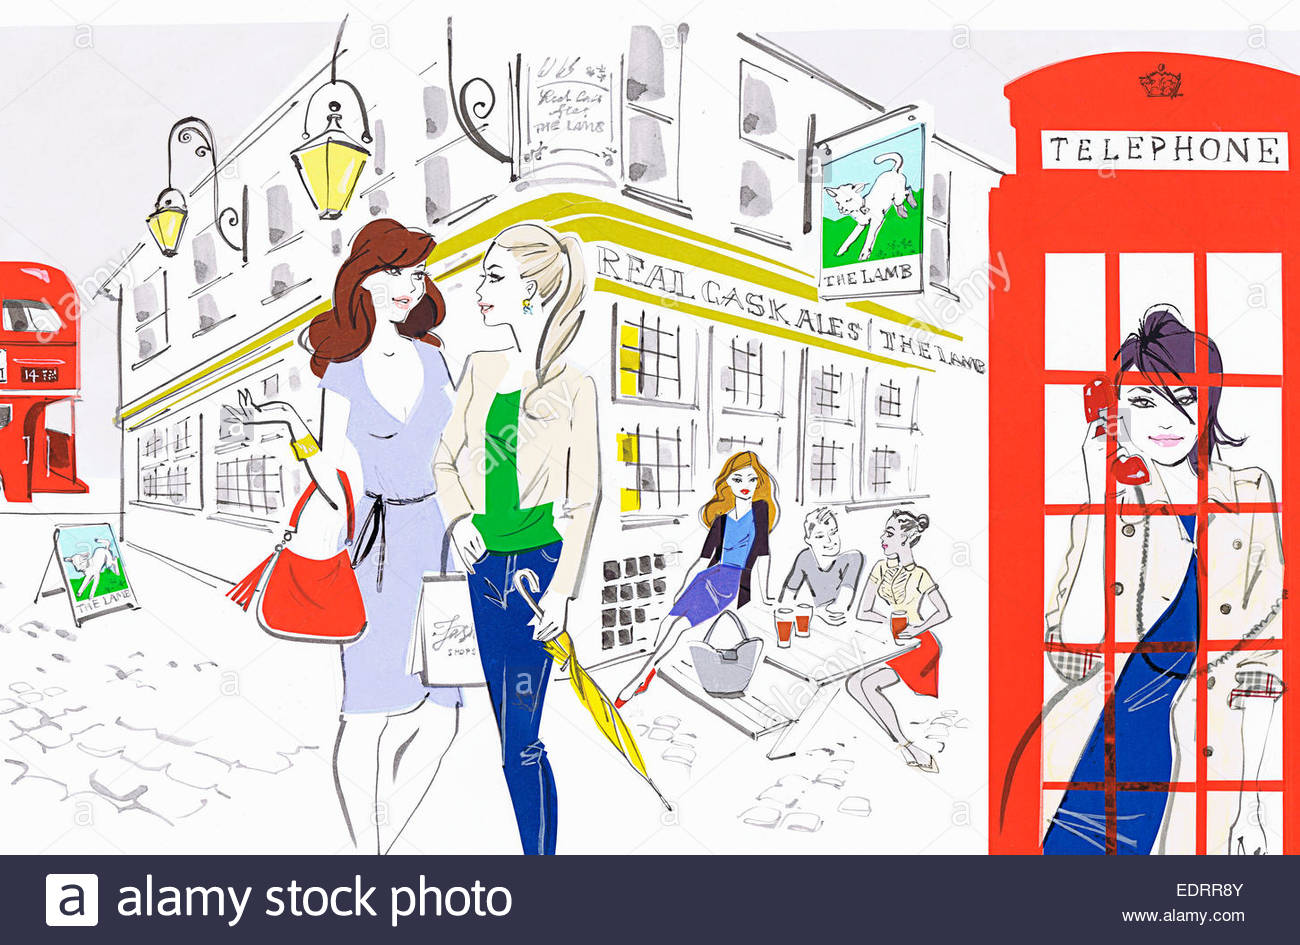 hight resolution of people enjoying city life outside of london pub and using red telephone box stock image